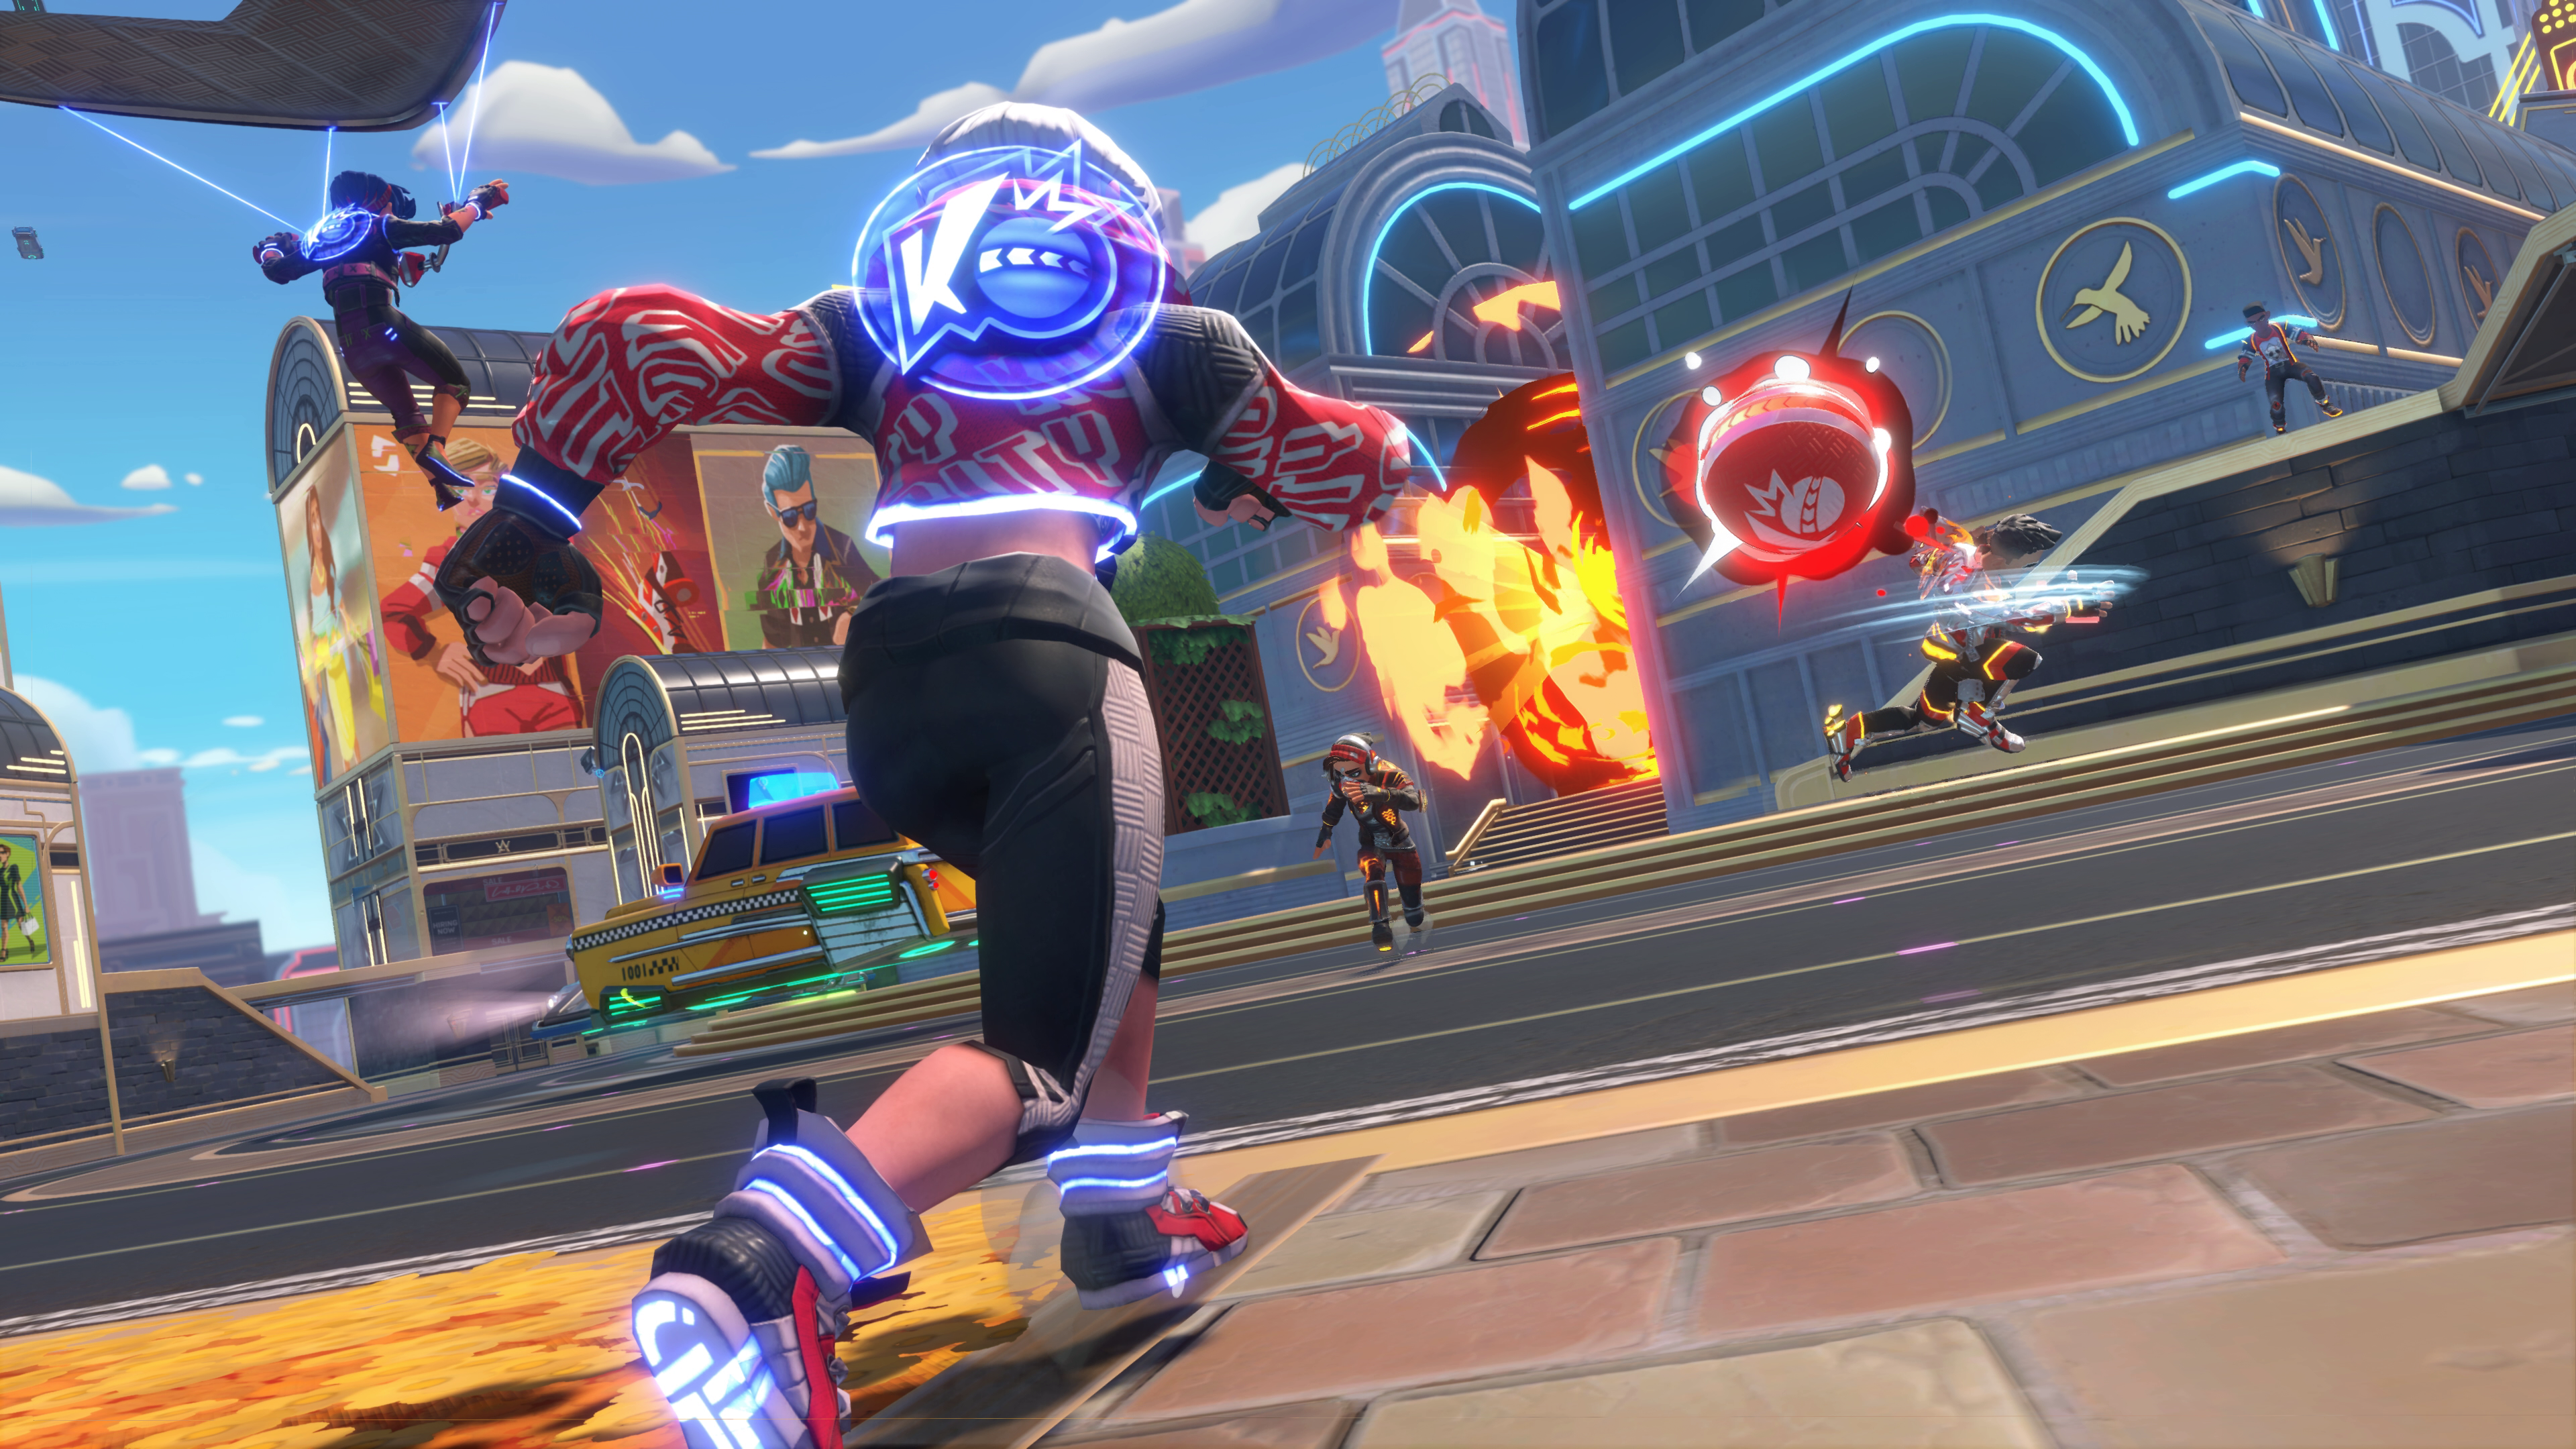 Knockout City is a 3v3 online dodgeball game coming this year